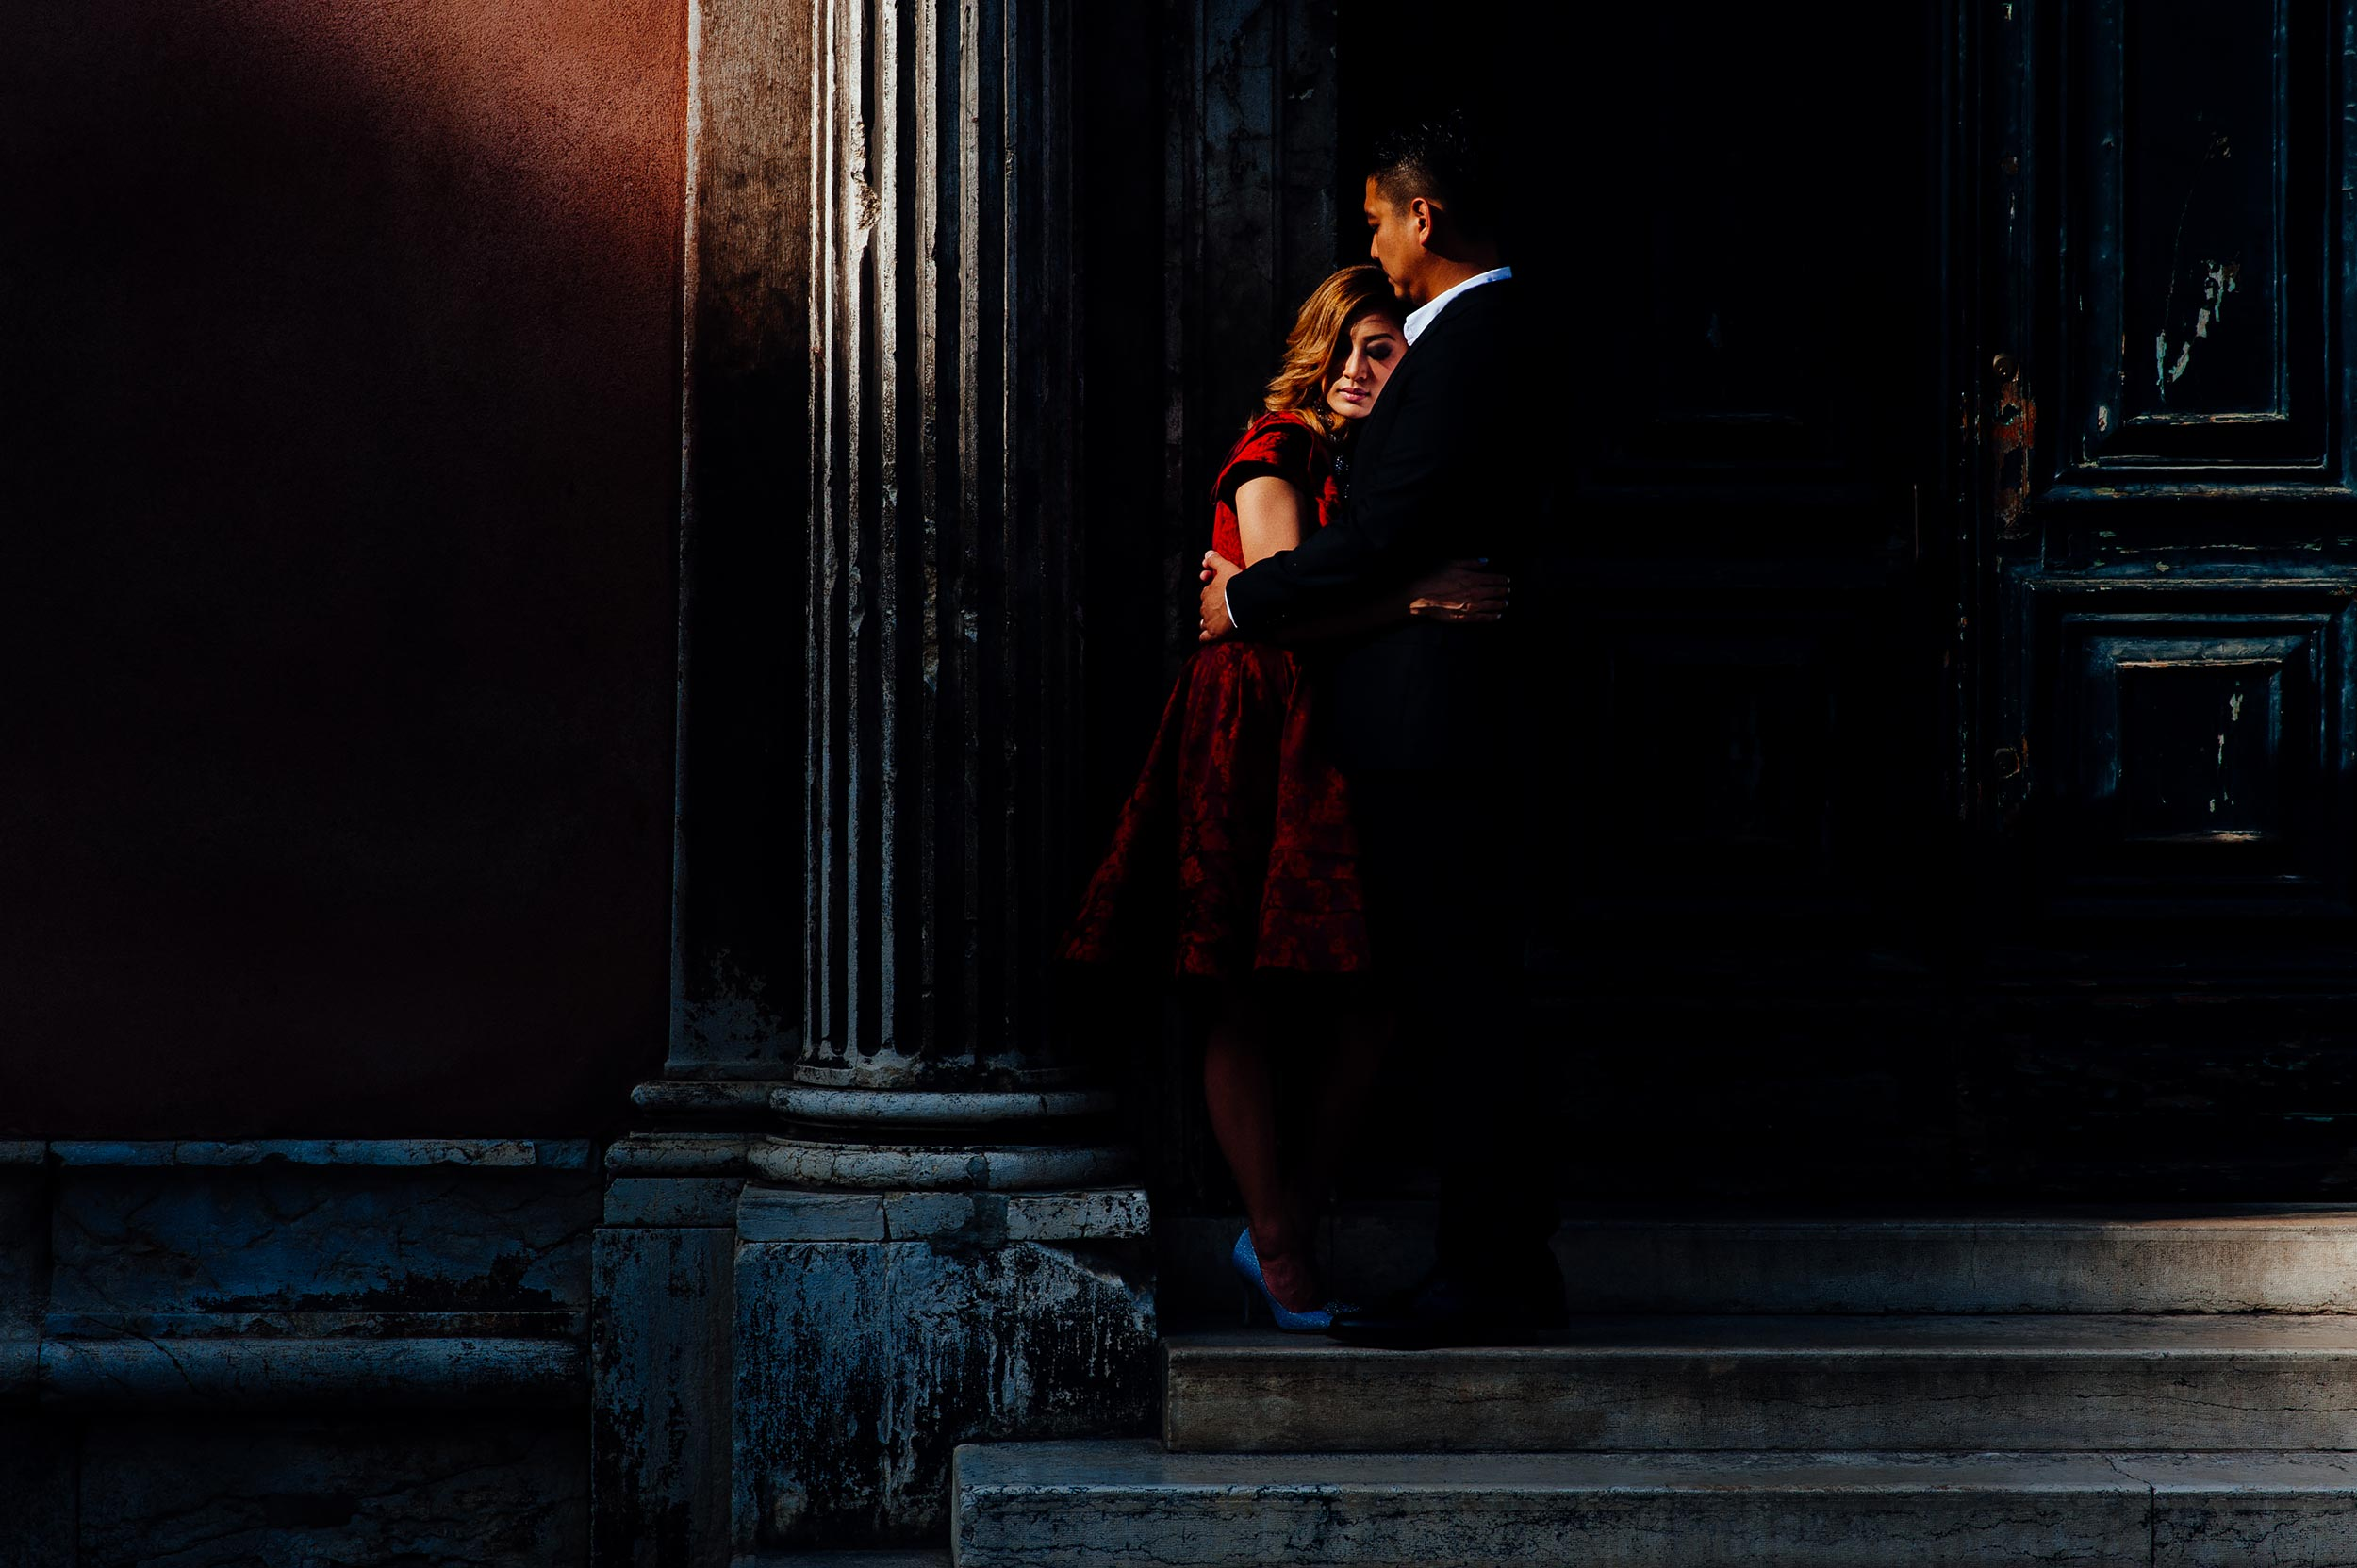 engagement-photographer-venice-couple-hugs-in-a-ray-of-light-red-dress.jpg